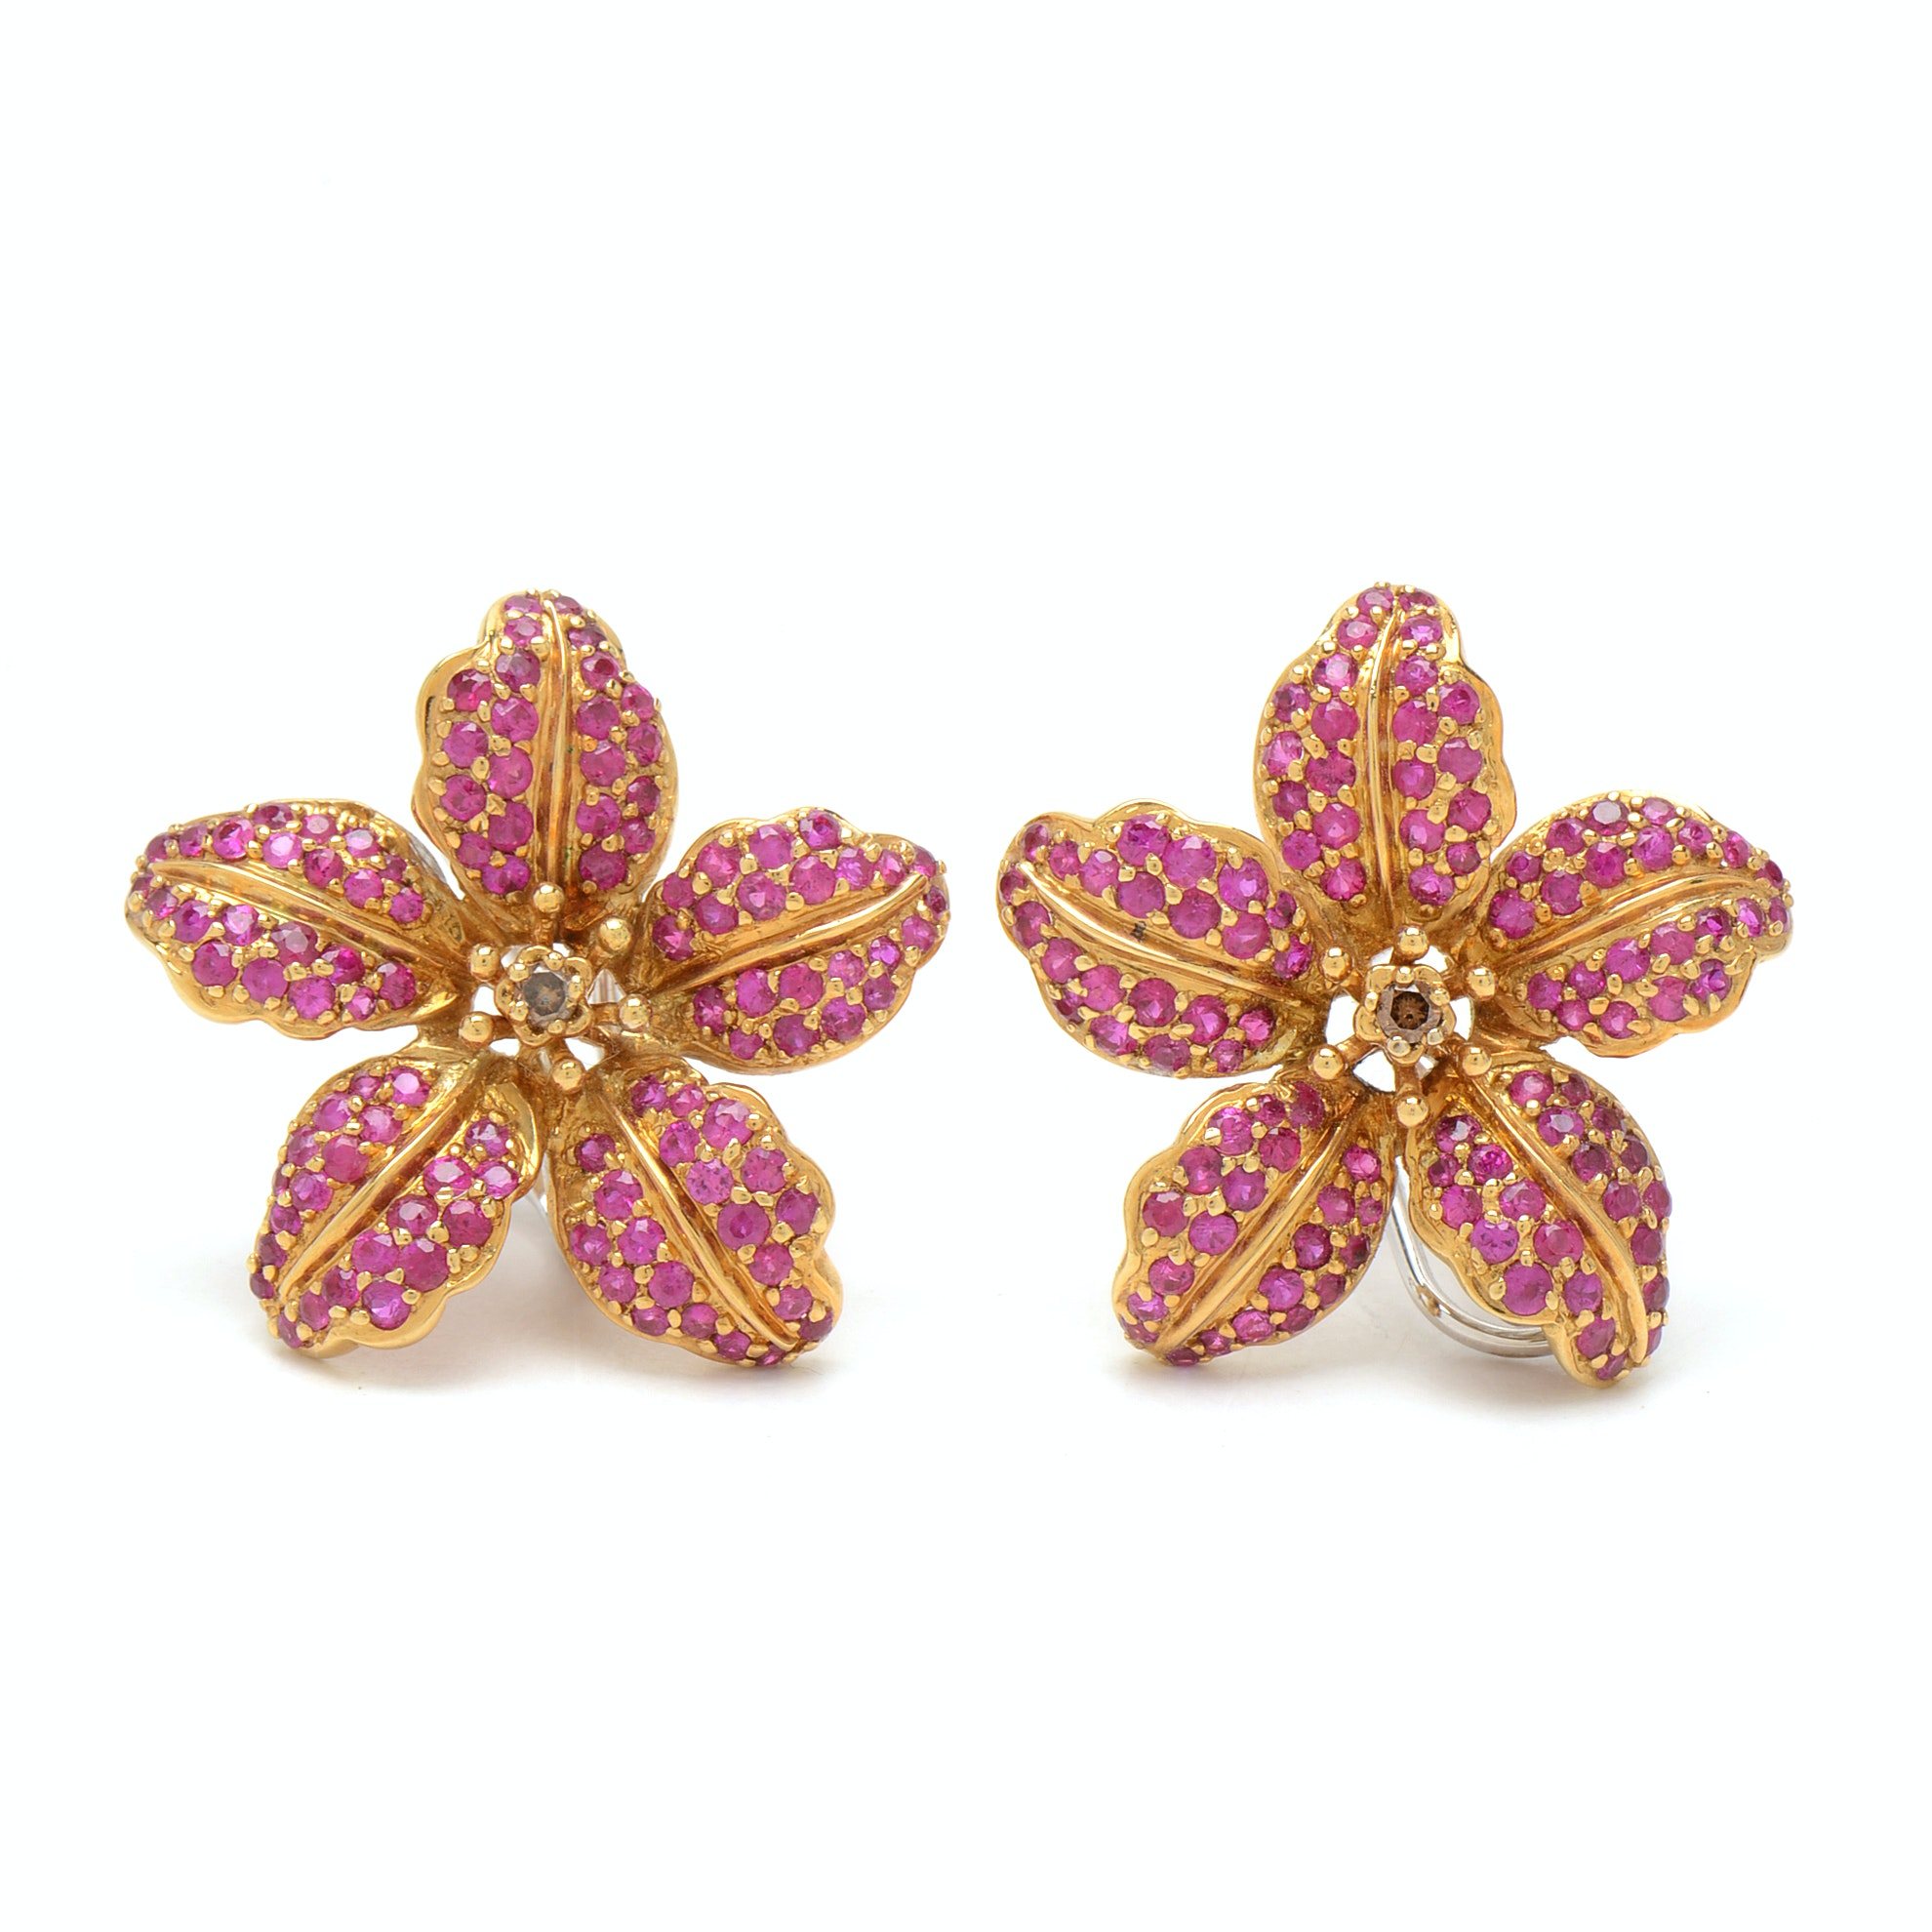 Samuel Benham 18K Yellow and White Gold Diamond and Ruby Lily Earrings